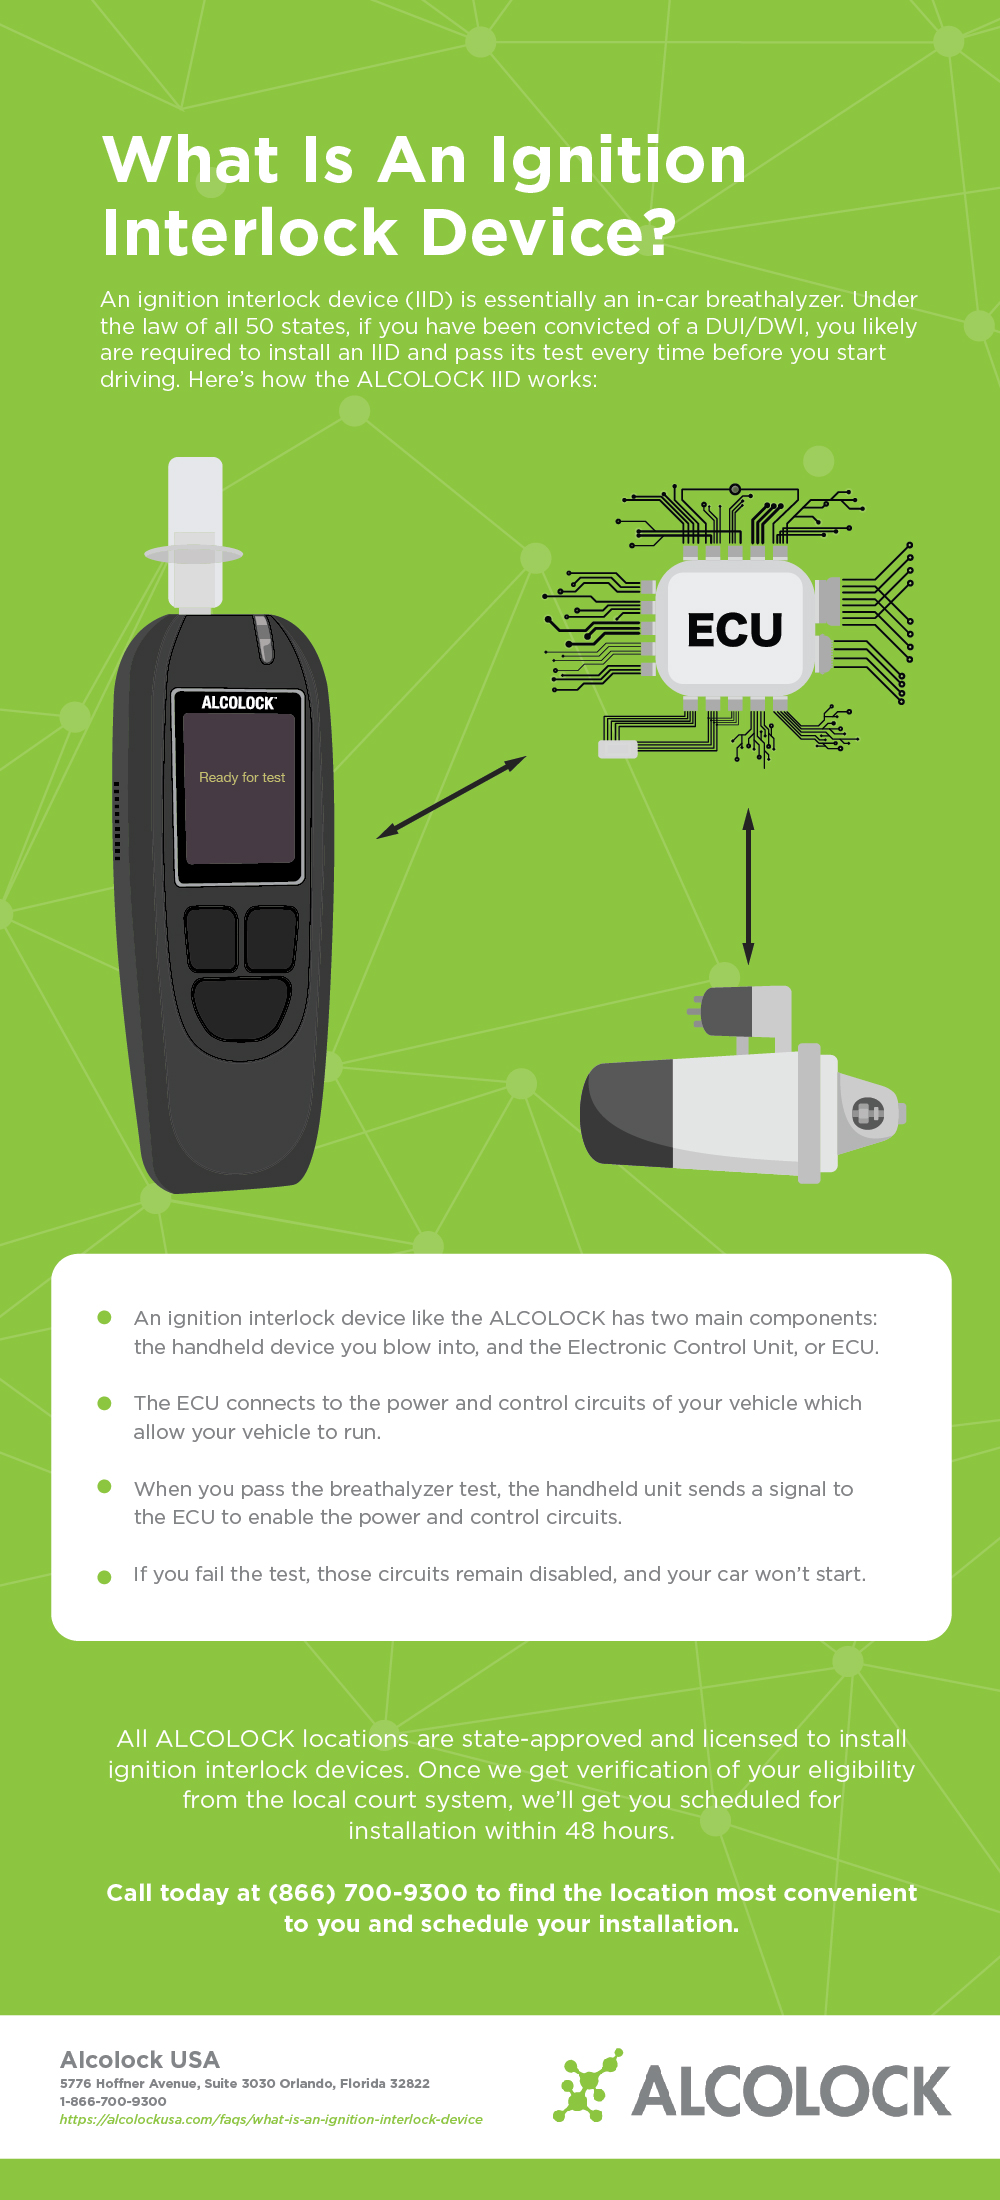 WHAT IS AN IGNITION INTERLOCK DEVICE